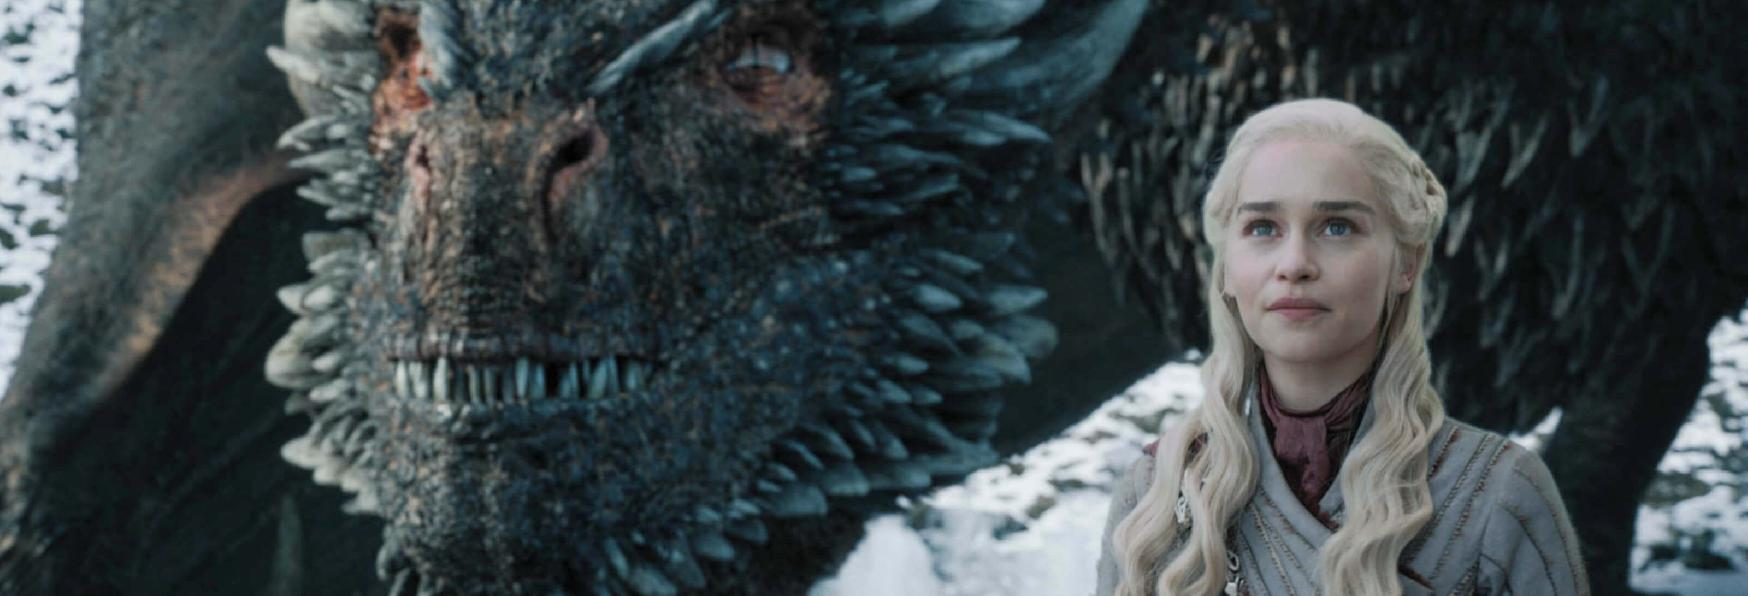 Game of Thrones 8x04: ennesimo Leak della Serie TV HBO, ormai è consuetudine